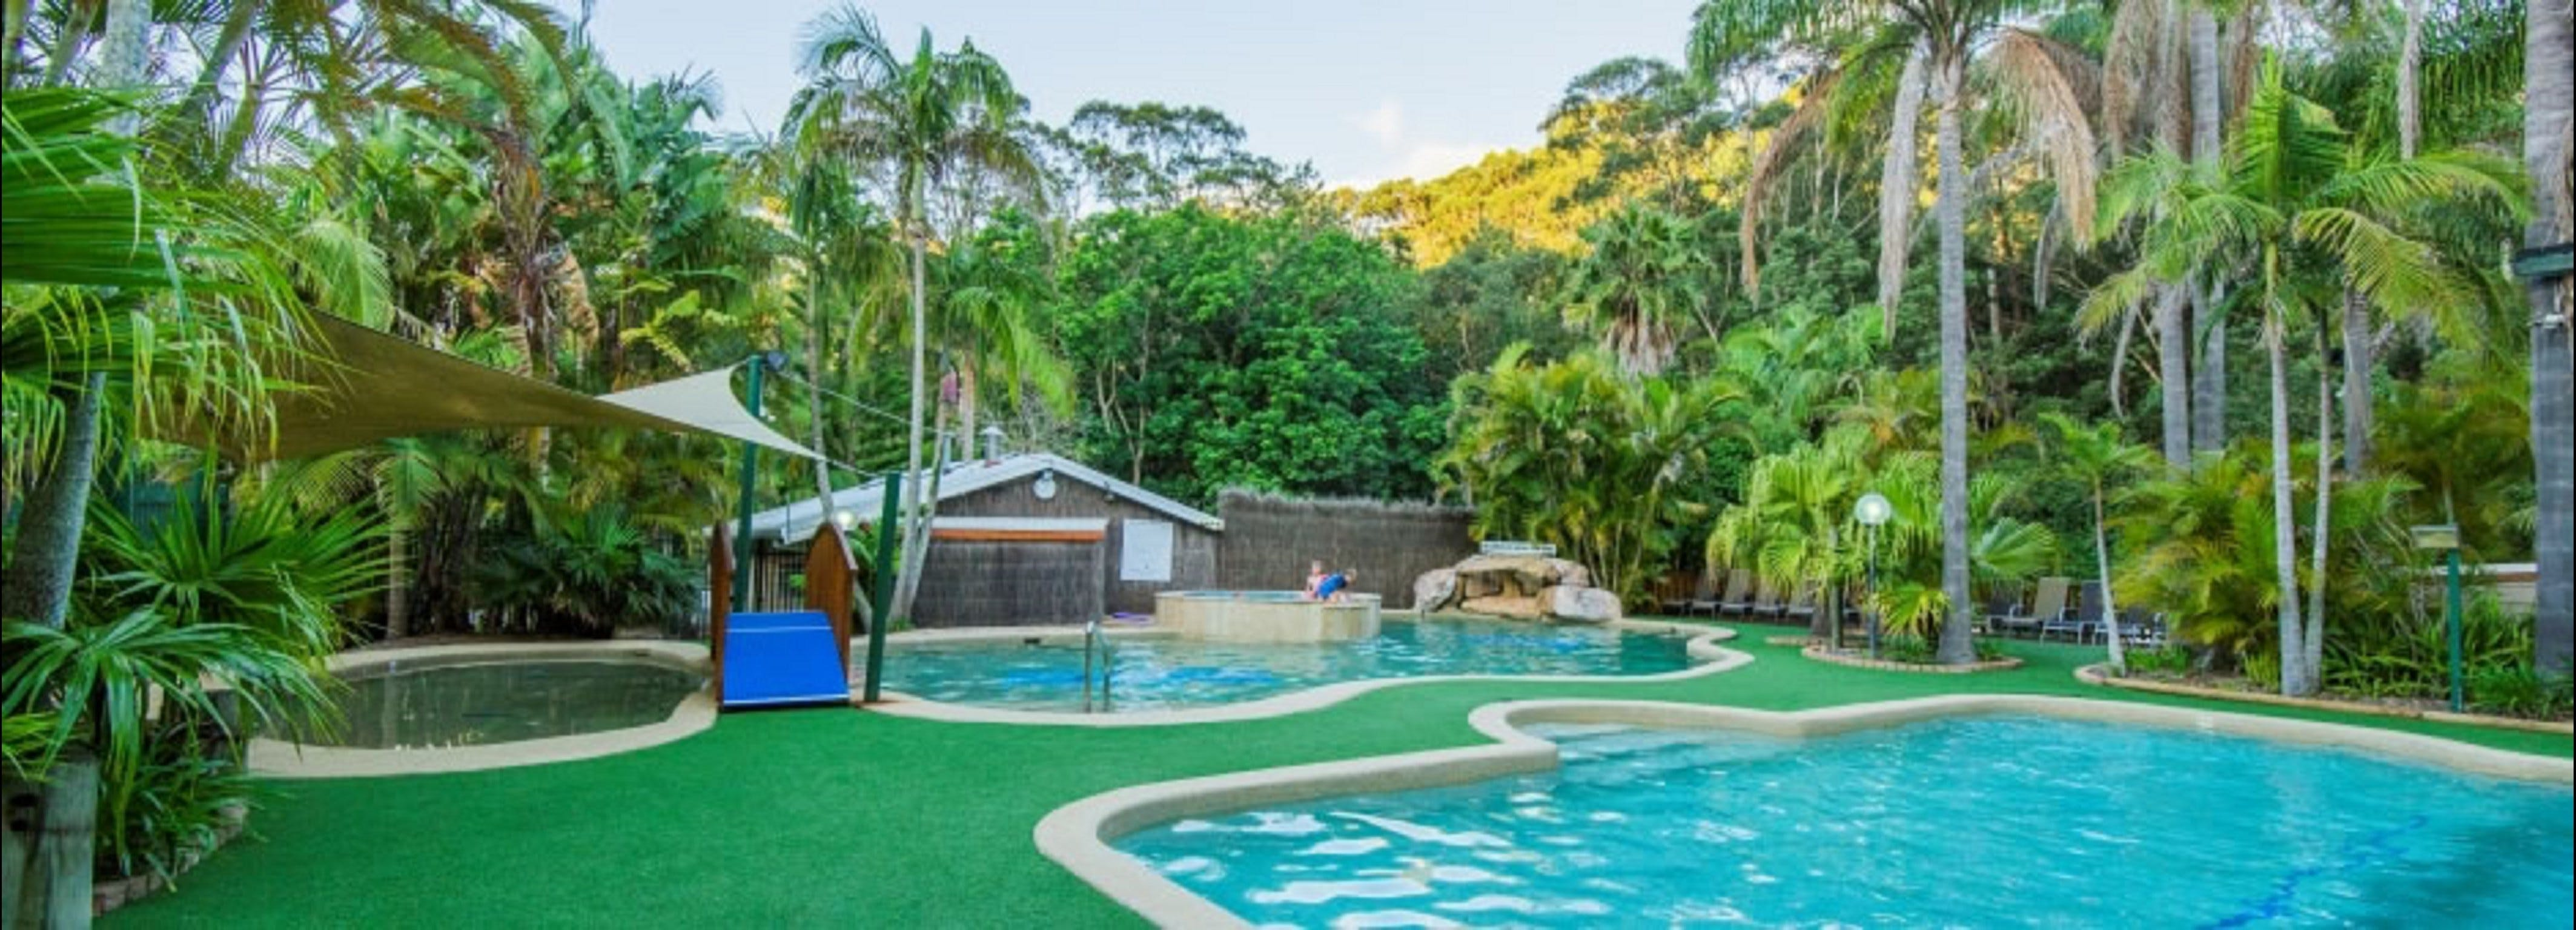 The Palms at Avoca - Accommodation Main Beach